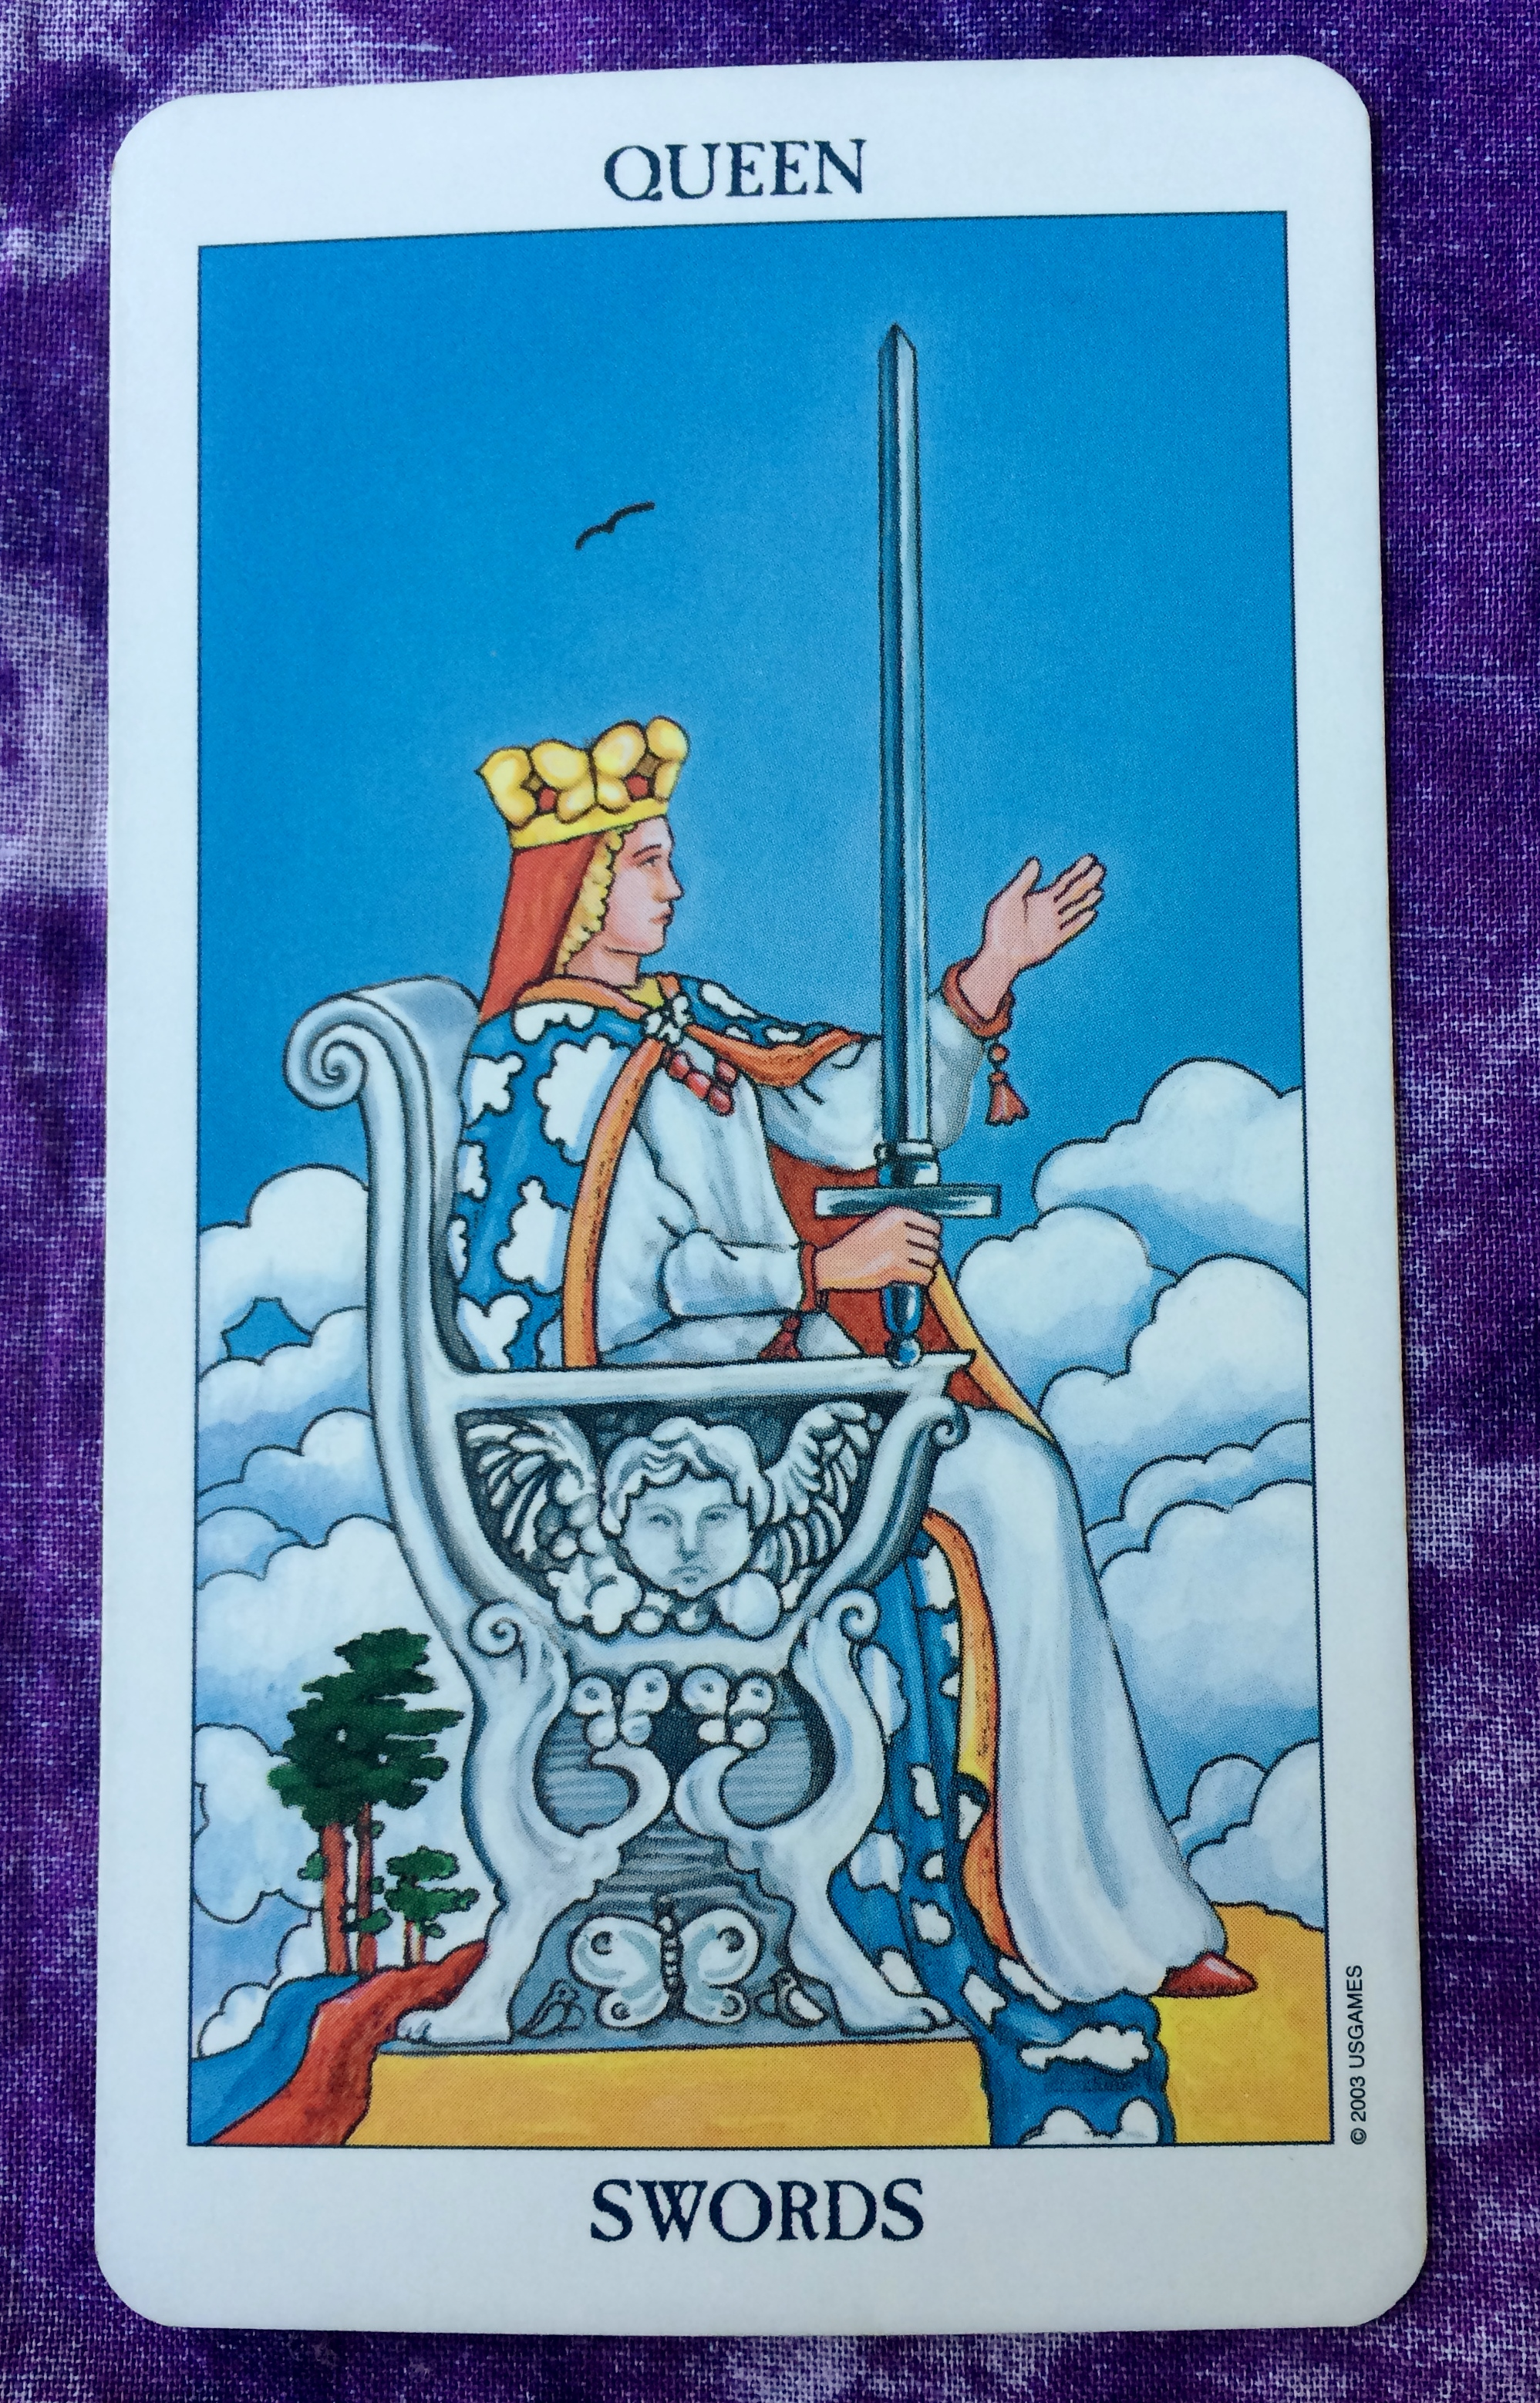 For The Second Day In A Row Todays Card Is The Queen Of Swords Like Yesterday Today Is A Good Day To Keep Emotions In Check This Doesnt Mean You Dont